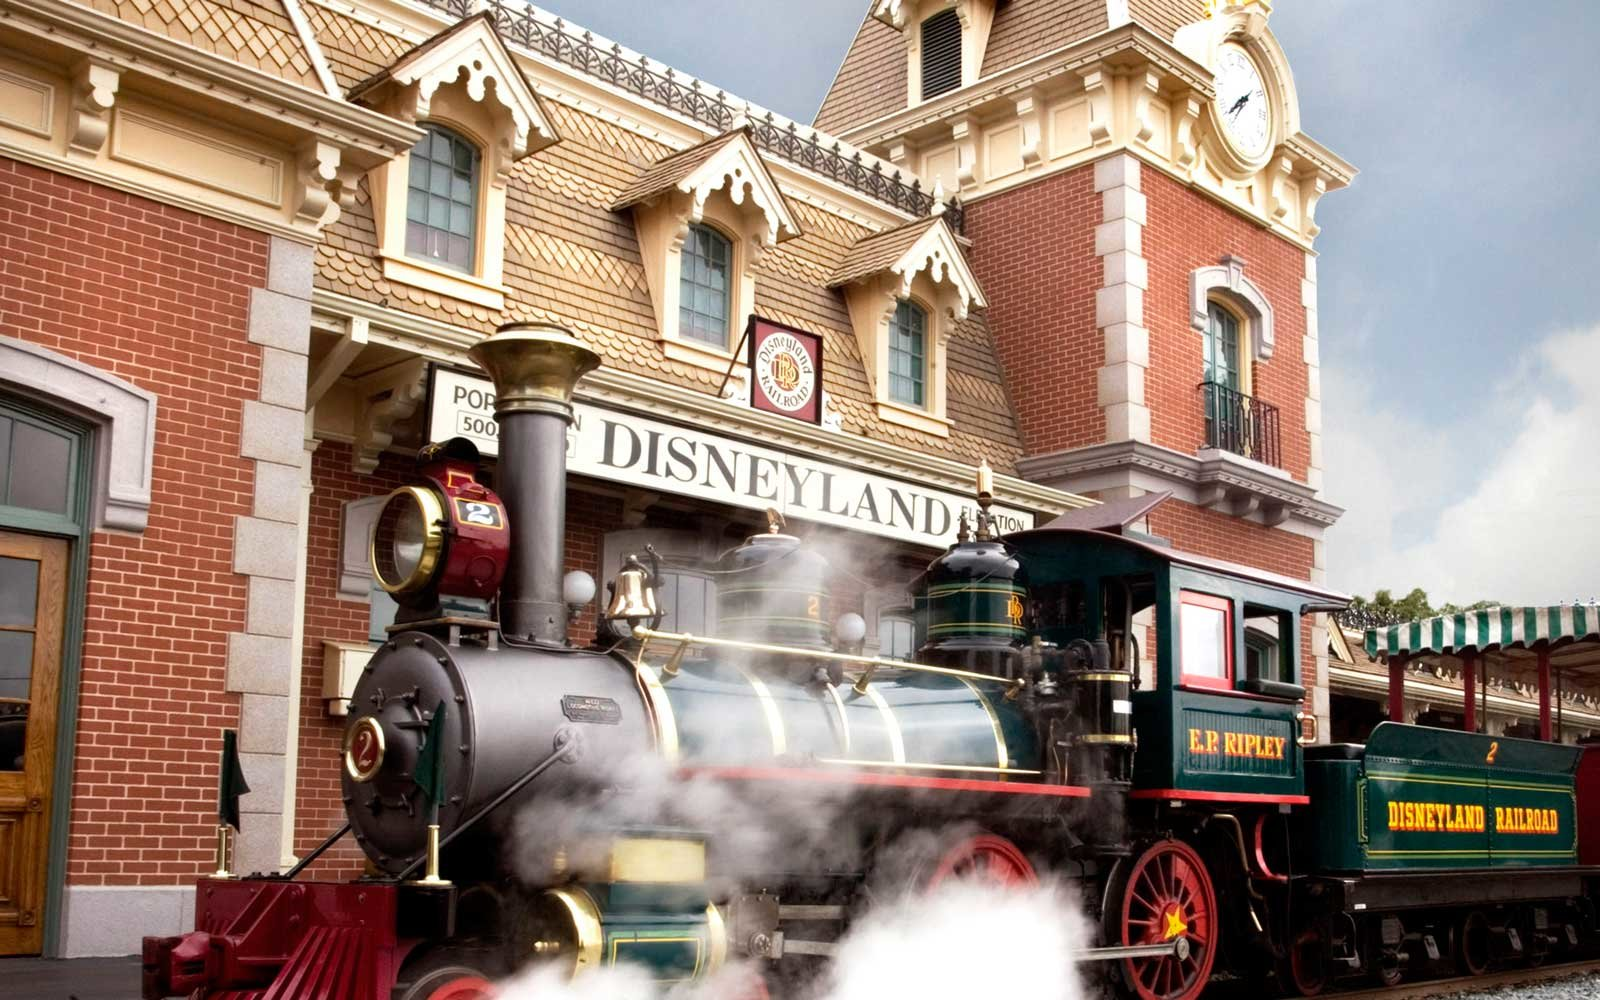 Disneyland Railroad, California